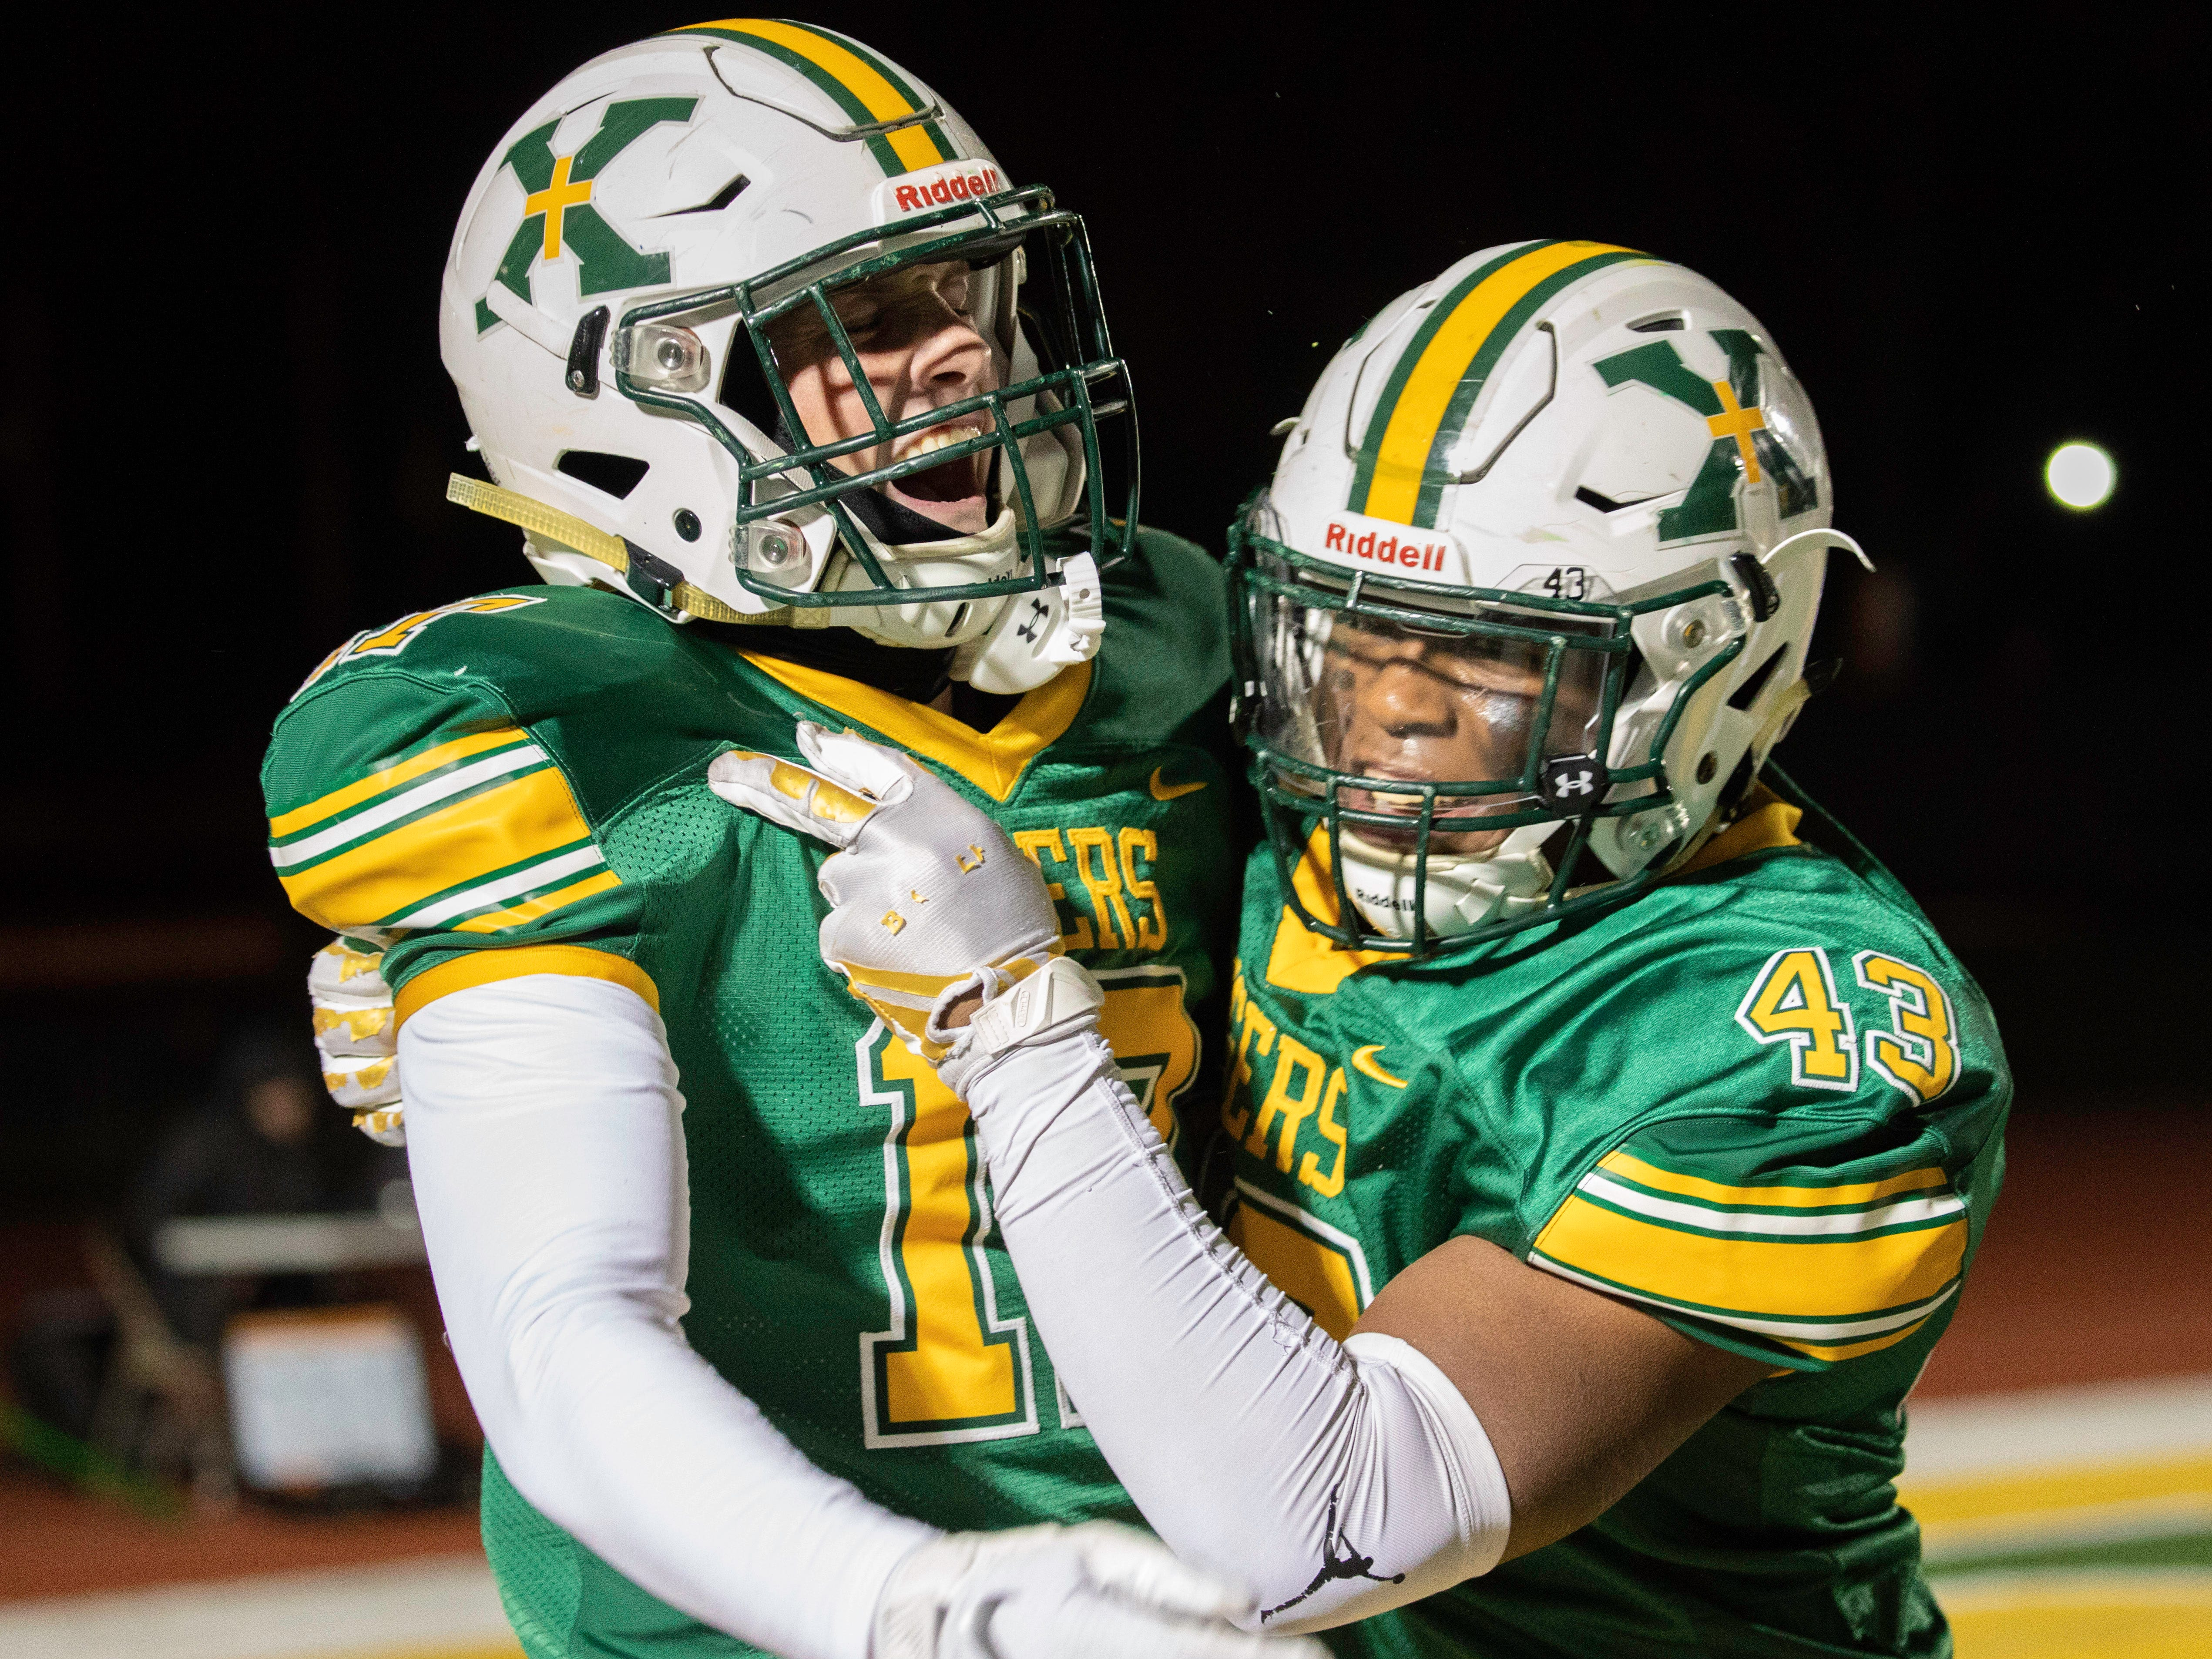 Sam Boarman and Camren Sams celebrate Boarman's interception for a touchdown defeating Butler in the KHSAA regional playoff game 35-20 at St. Xavier High School, Friday, Nov. 9, 2018.